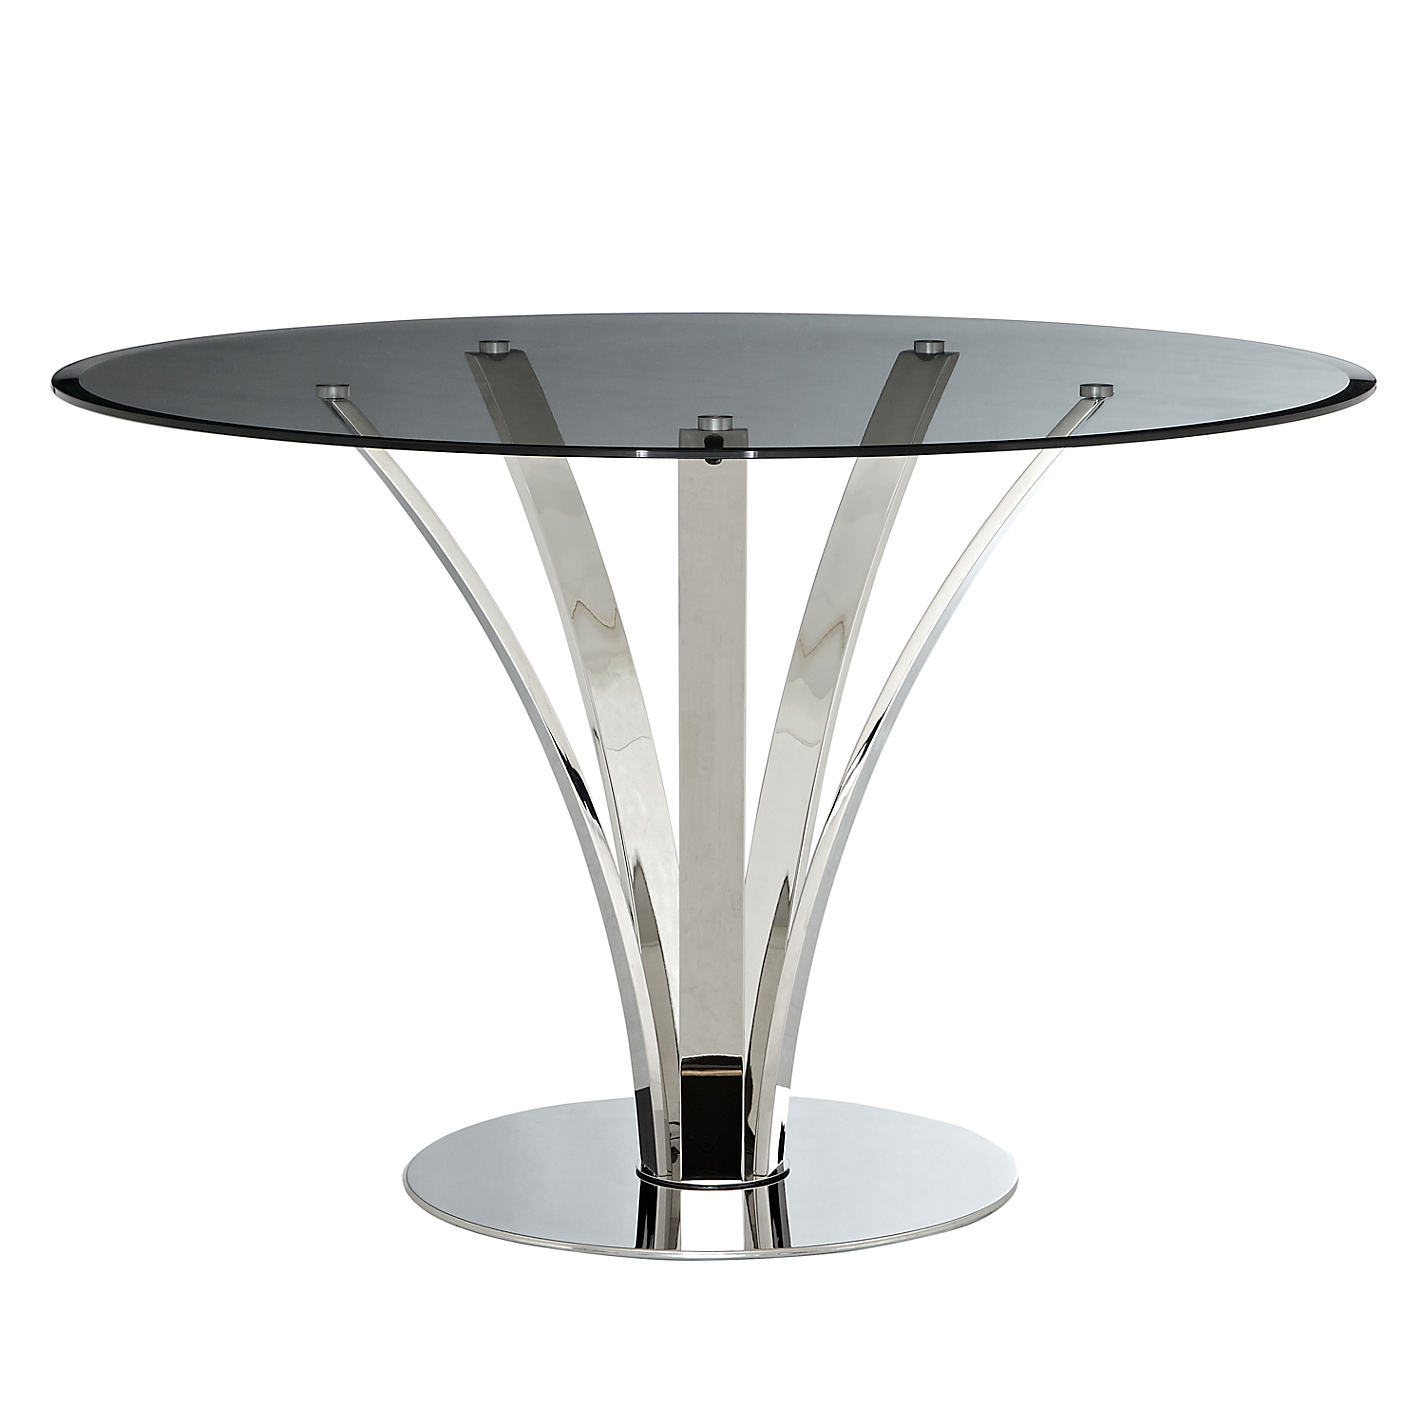 1 x BOXED TEMO MORITZ GLASS TABLE AND BASE DINING TABLE  : original from www.i-bidder.com size 1425 x 1425 jpeg 78kB